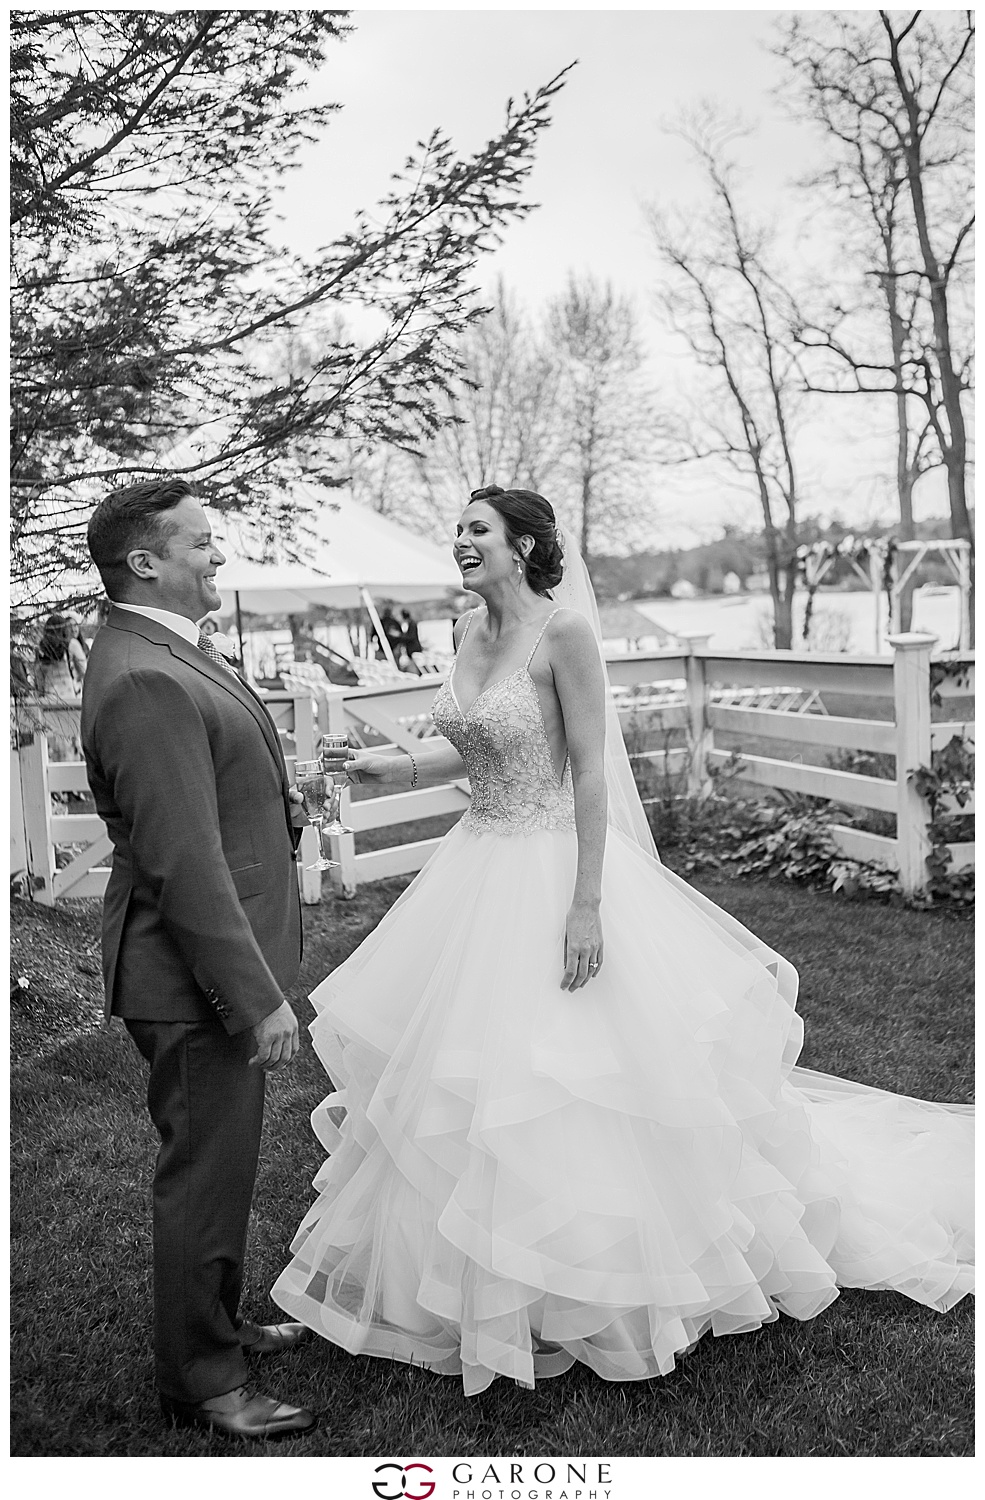 Shauna_Nathan_Carriage_House_Chuch_Landing_Lake_Winnapausakee_Wedding_0020.jpg